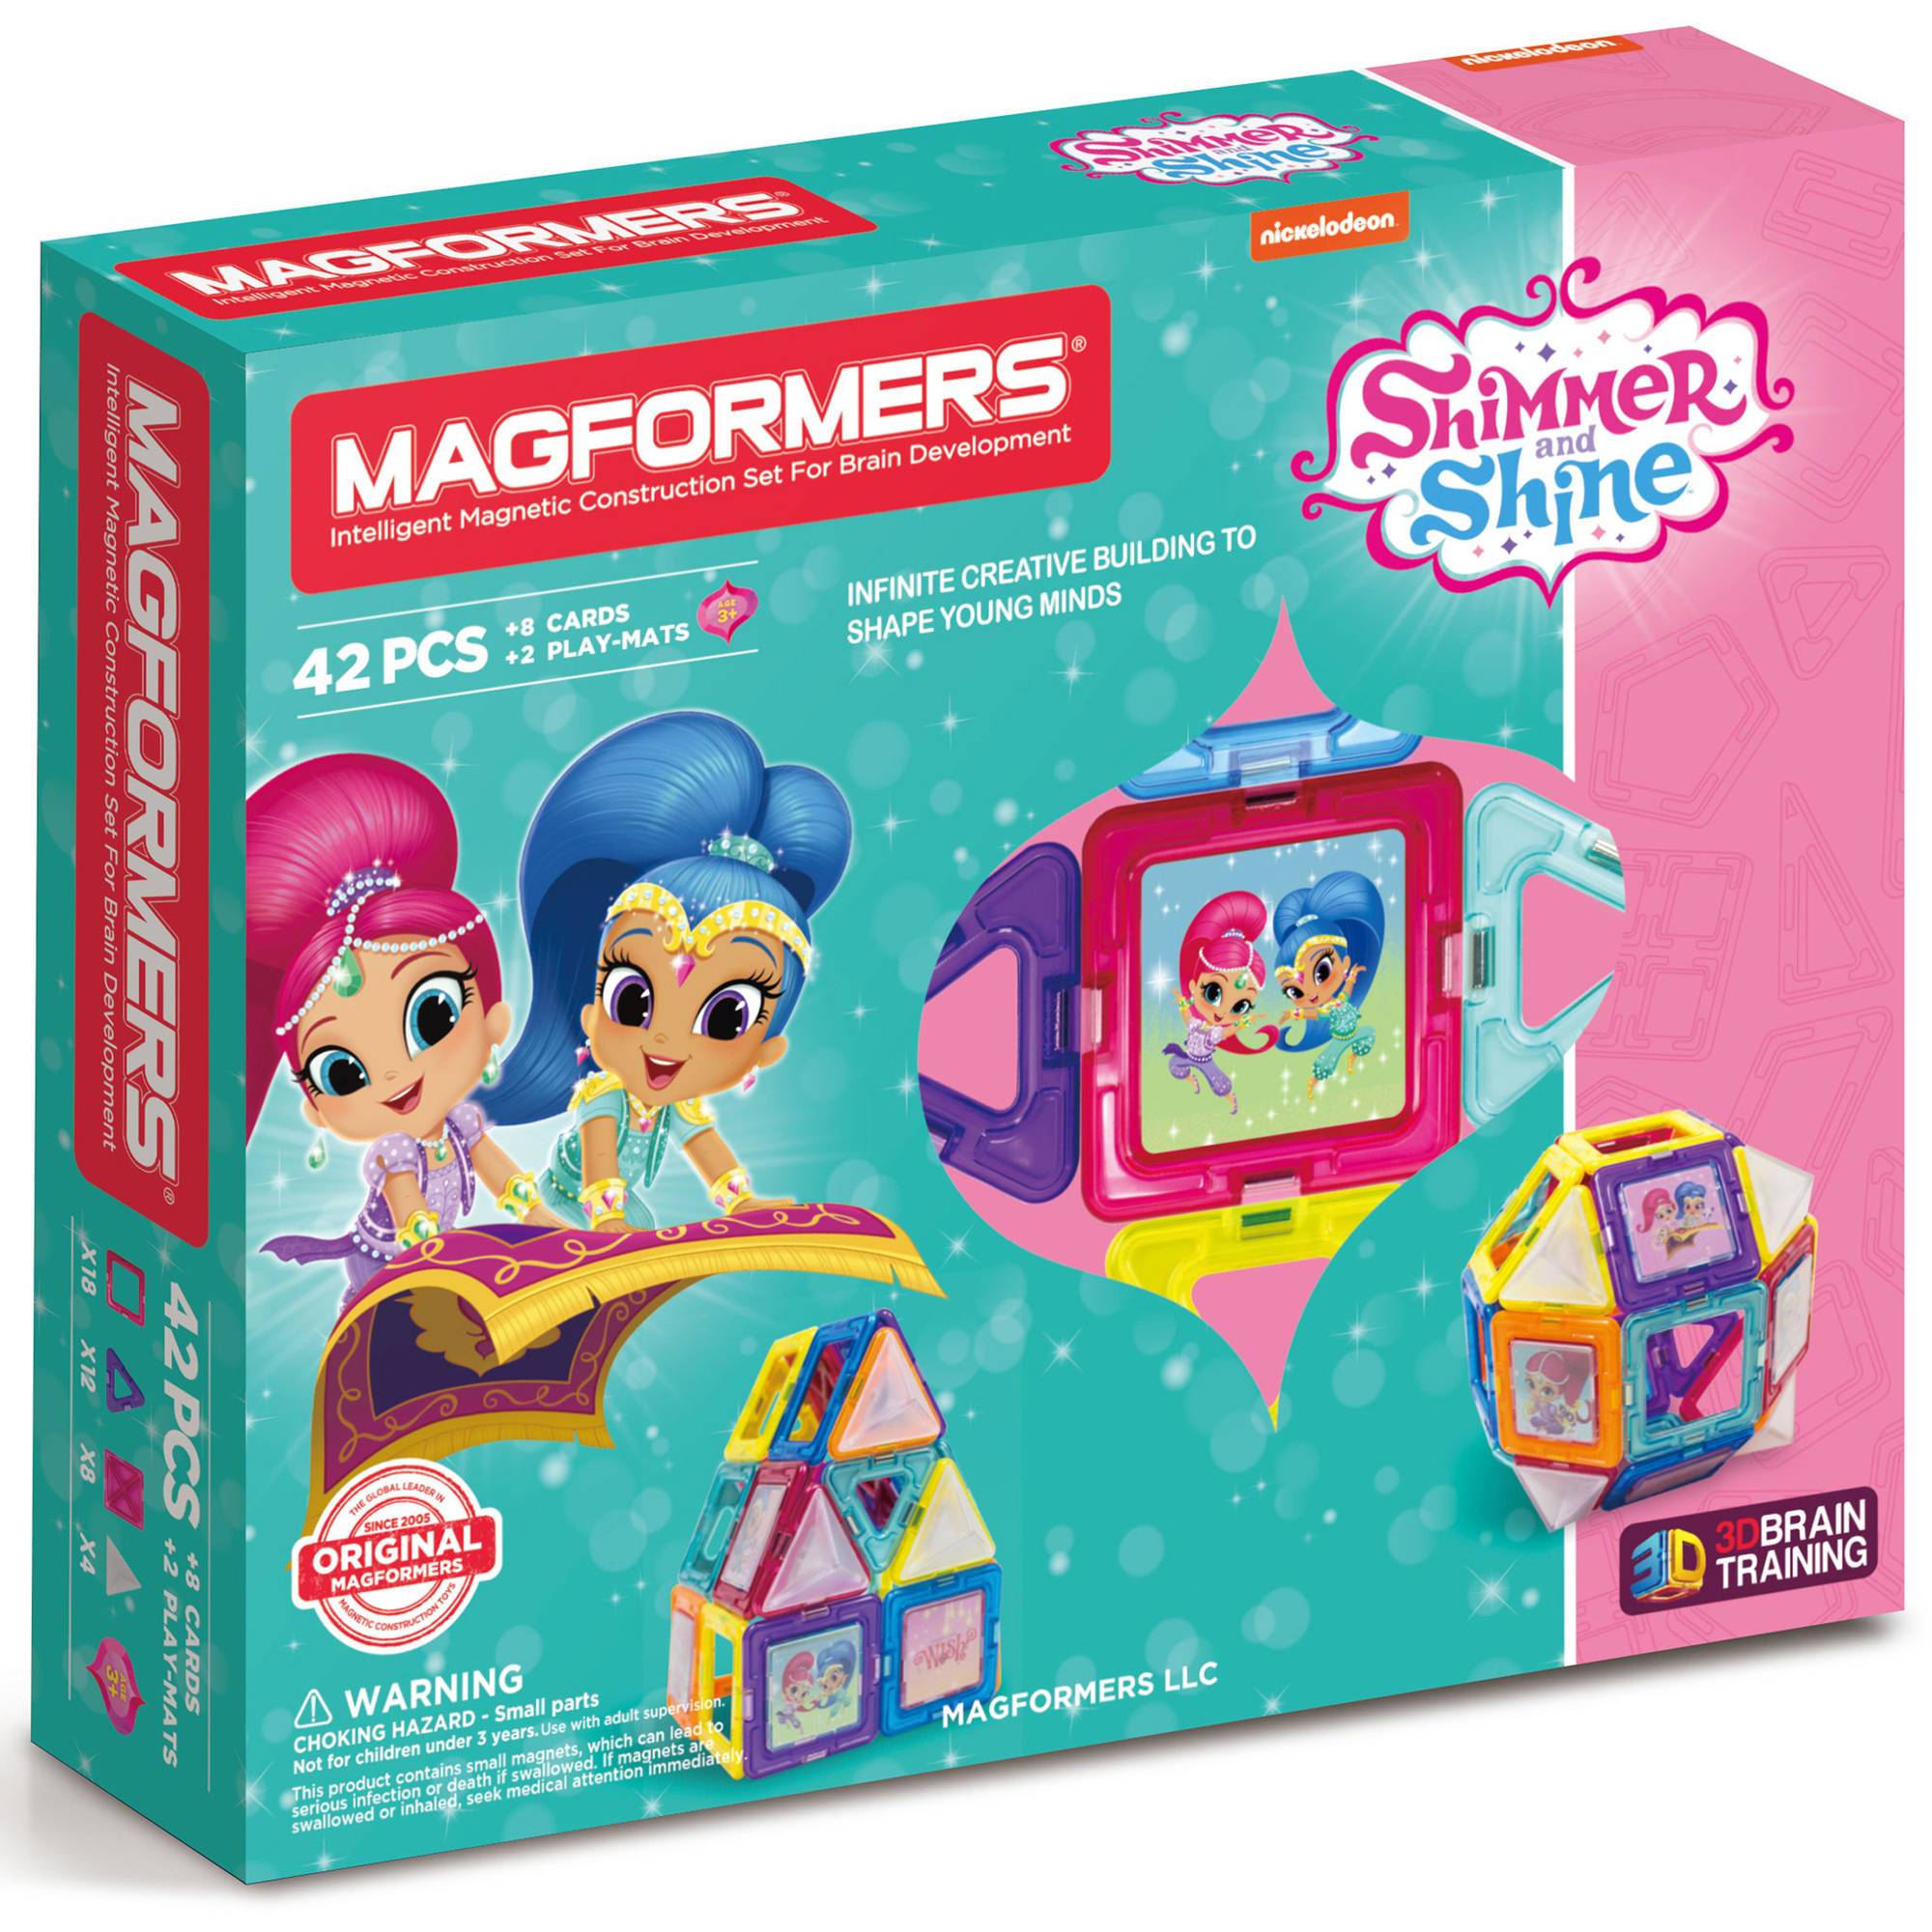 MAGFORMERS Shimmer and Shine 42-Piece Magnetic Construction Set